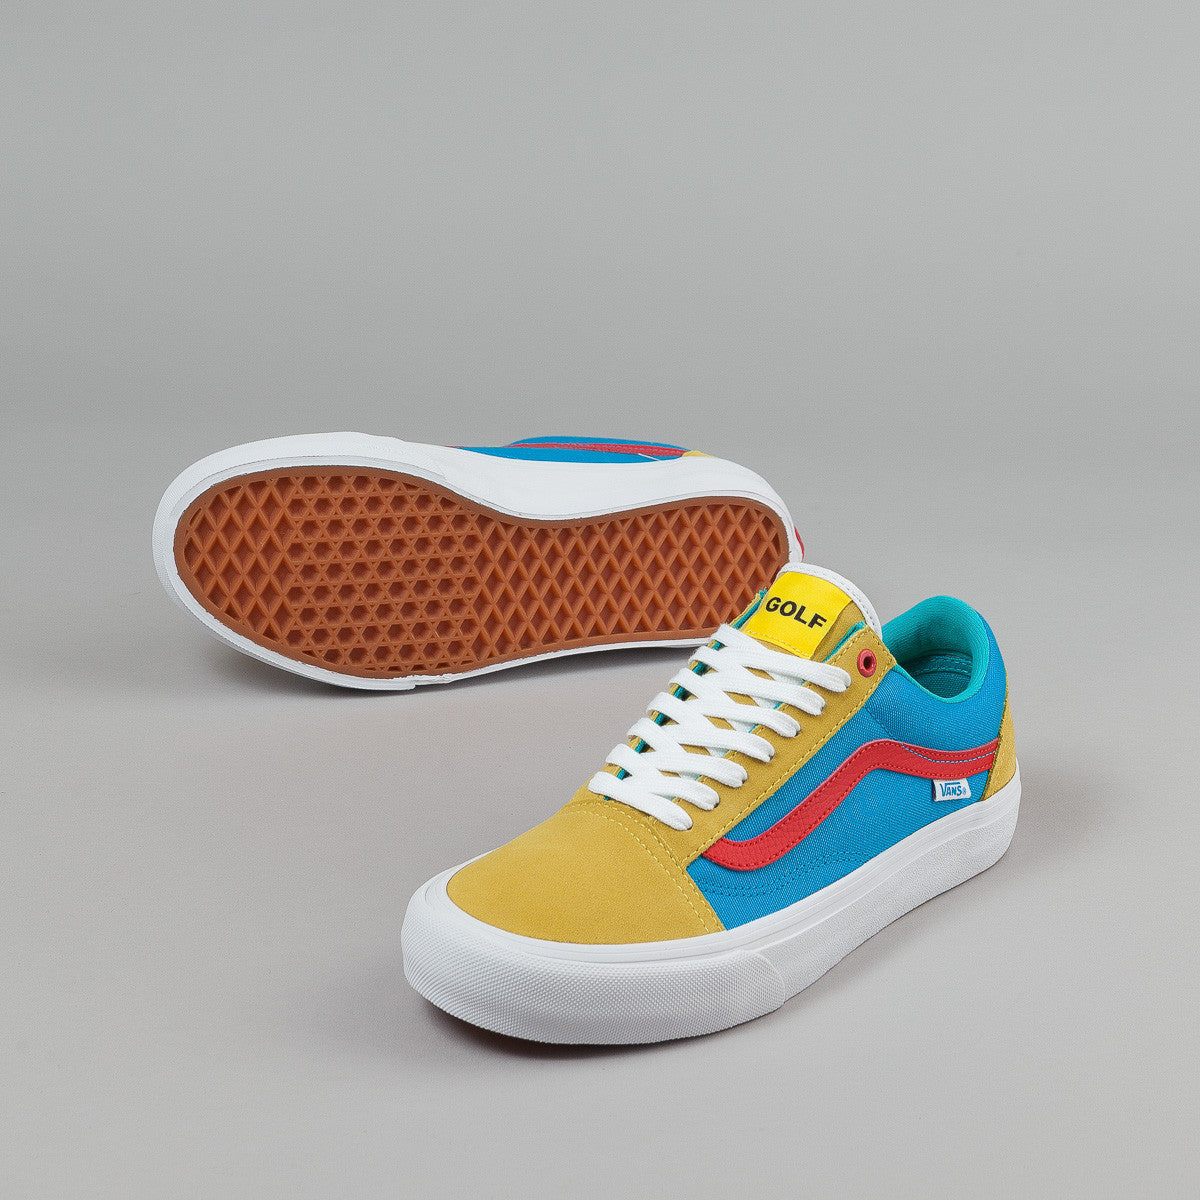 Vans Old Skool Pro Shoes (Golf Wang) - Yellow / Blue / Red